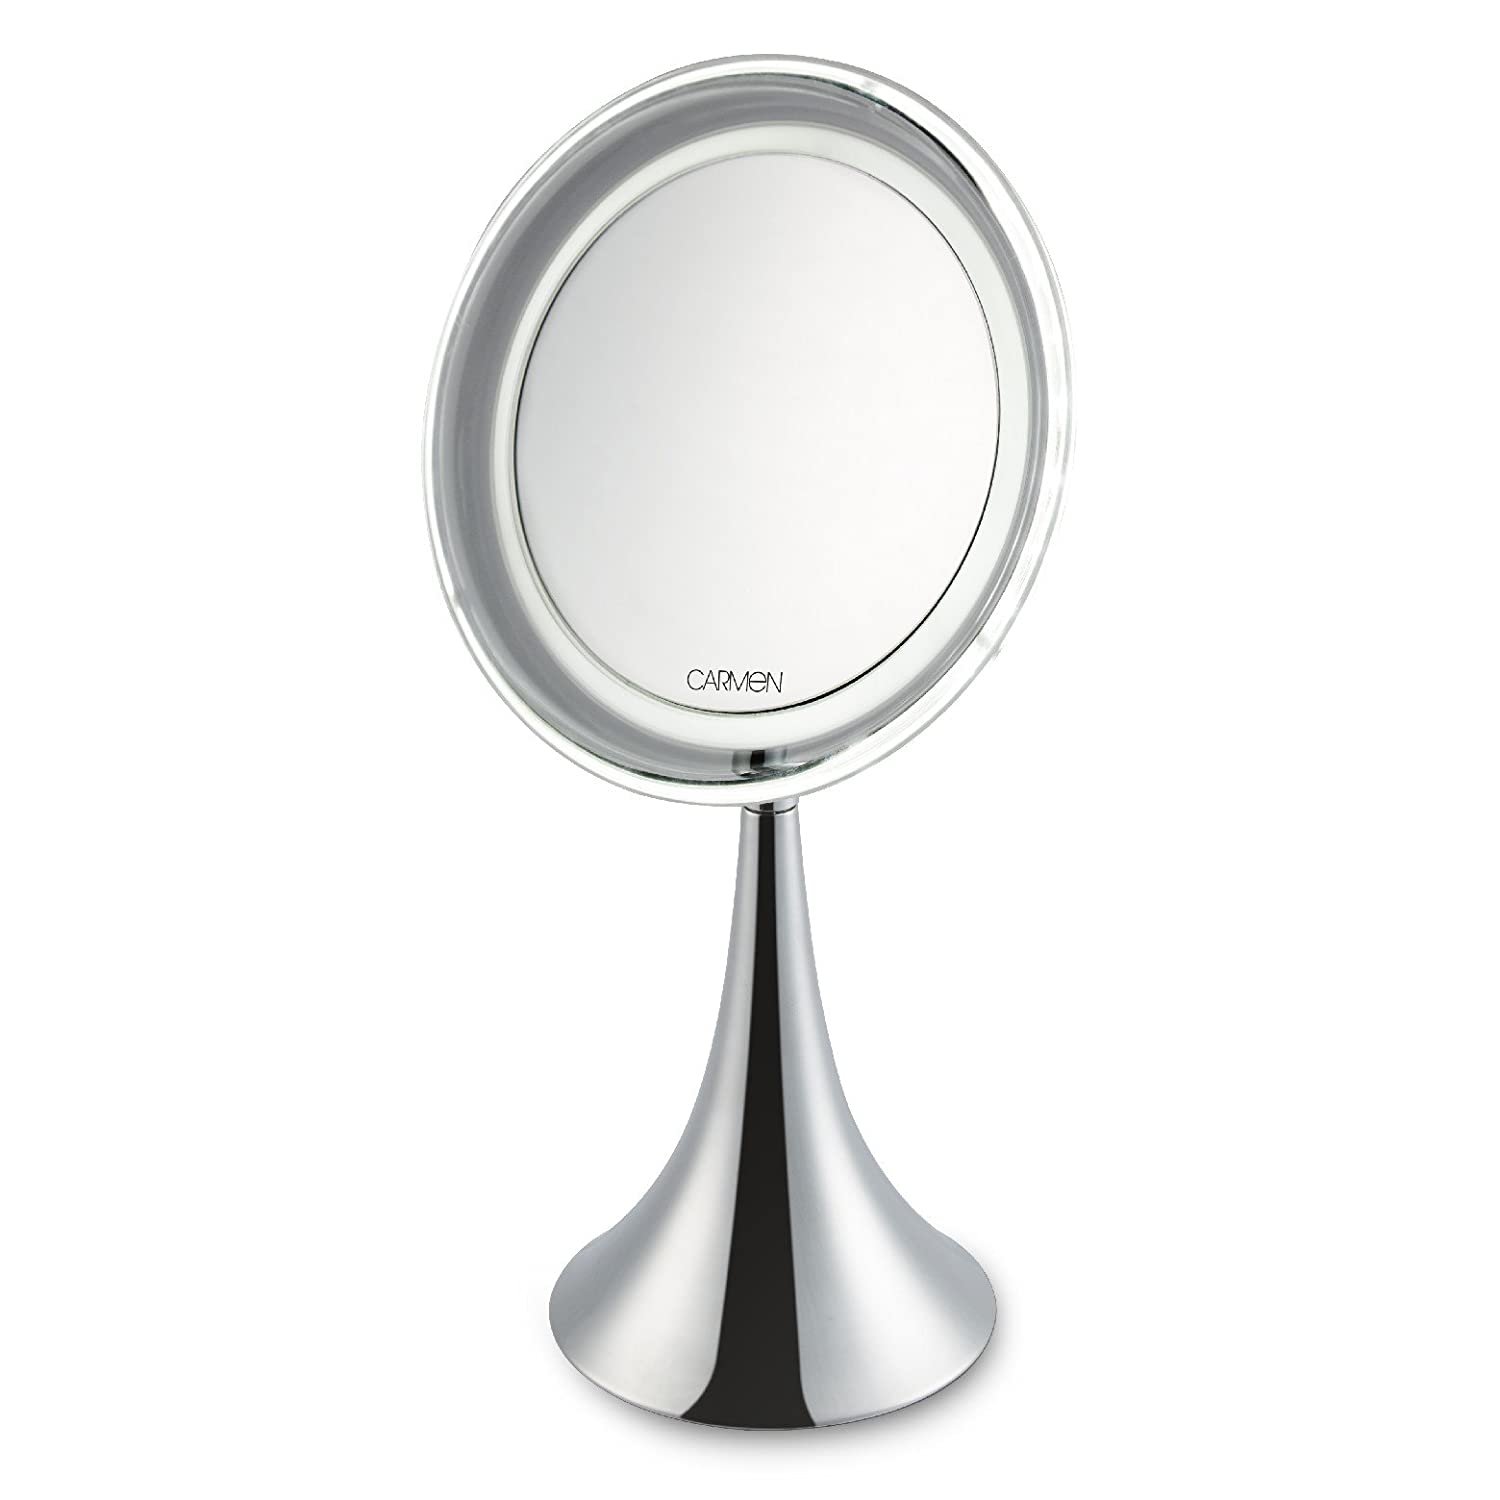 Carmen C85023 LED Illuminated Vanity Magnifying Mirror with 10 x Magnification and 24 LED Lights for Crystal Clear Results, Battery Powered in a Chrome Finish, White RKW